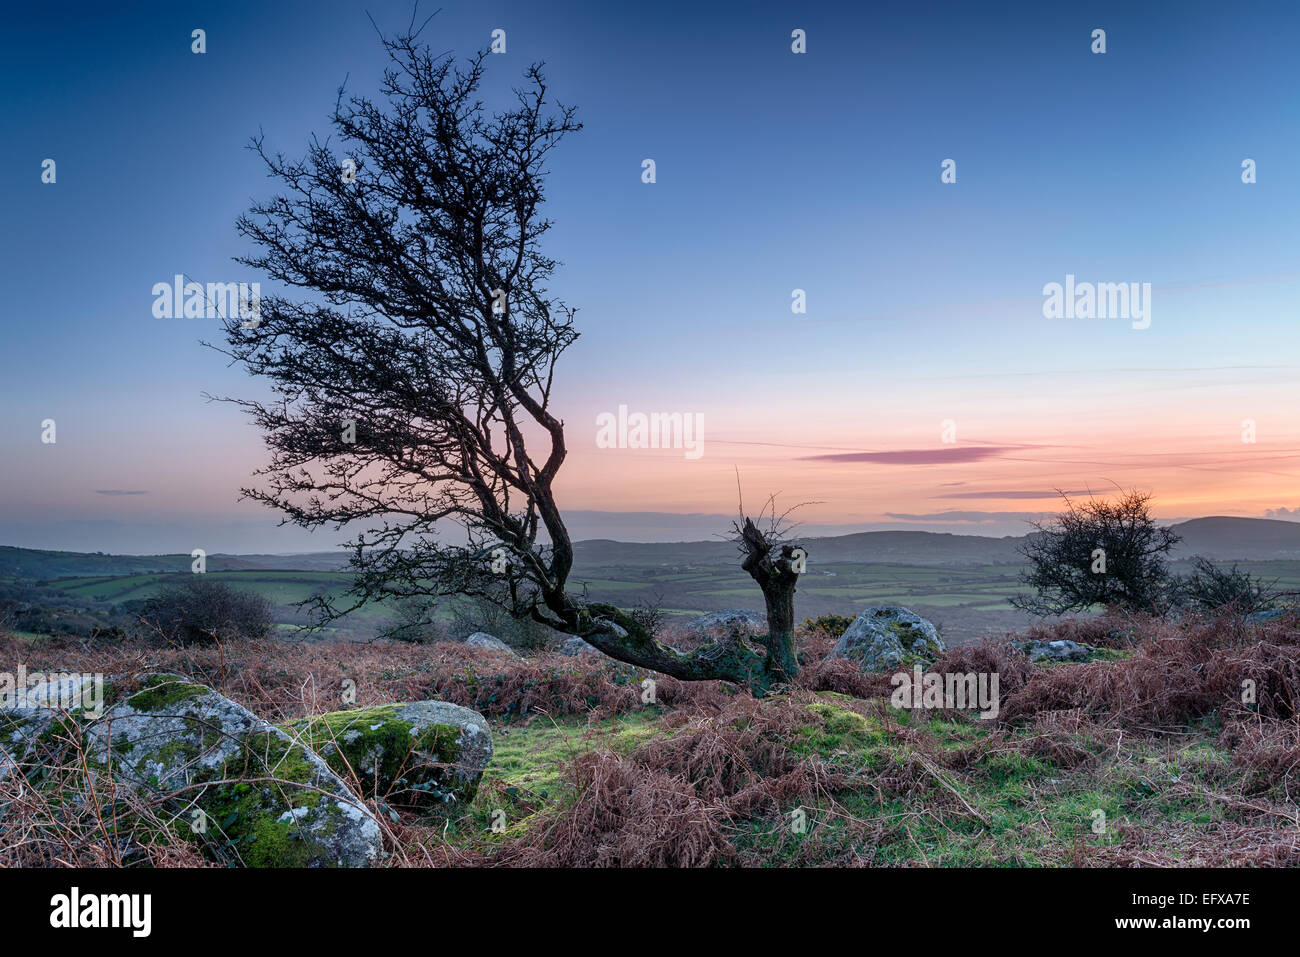 A gnarled old hawthorn tree at sunset on rugged moorland at Hleman Tor near Bodmin in Cornwall - Stock Image